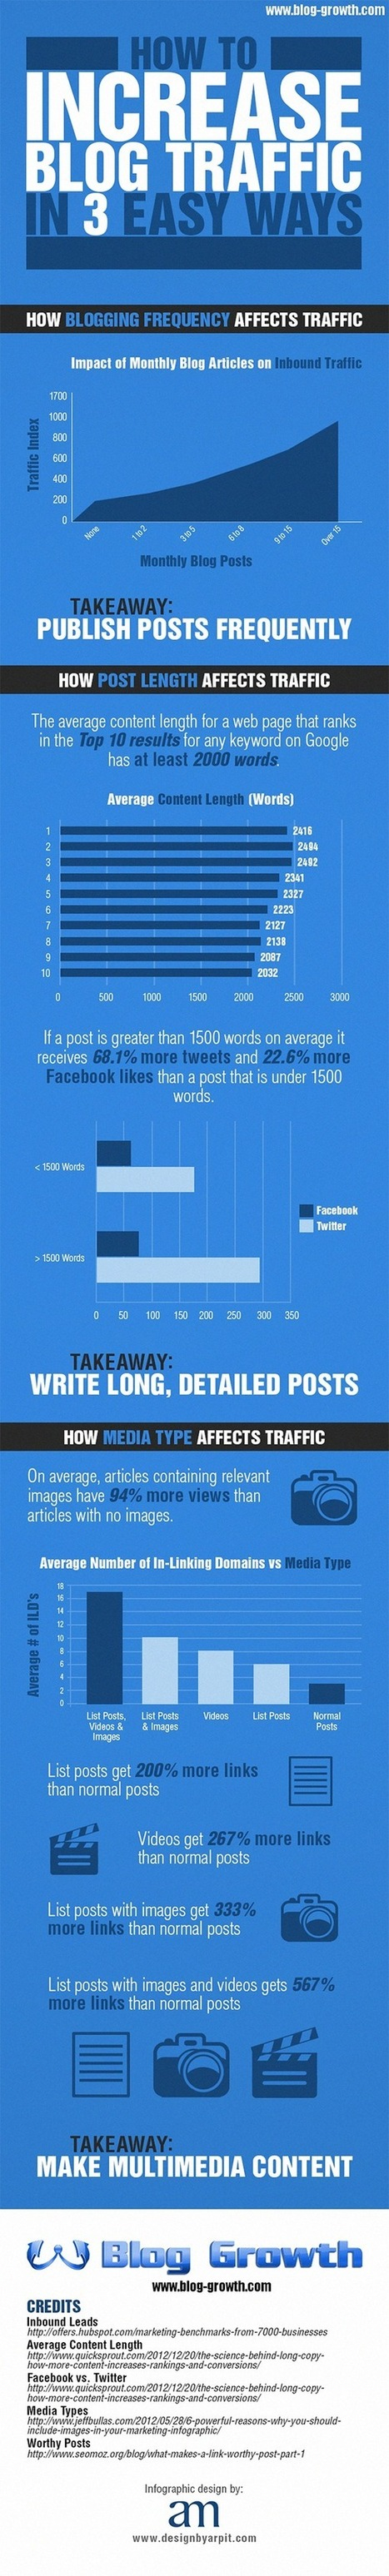 3 Easy Ways to Increase Blog Traffic | Web Design and Internet Marketing | Scoop.it